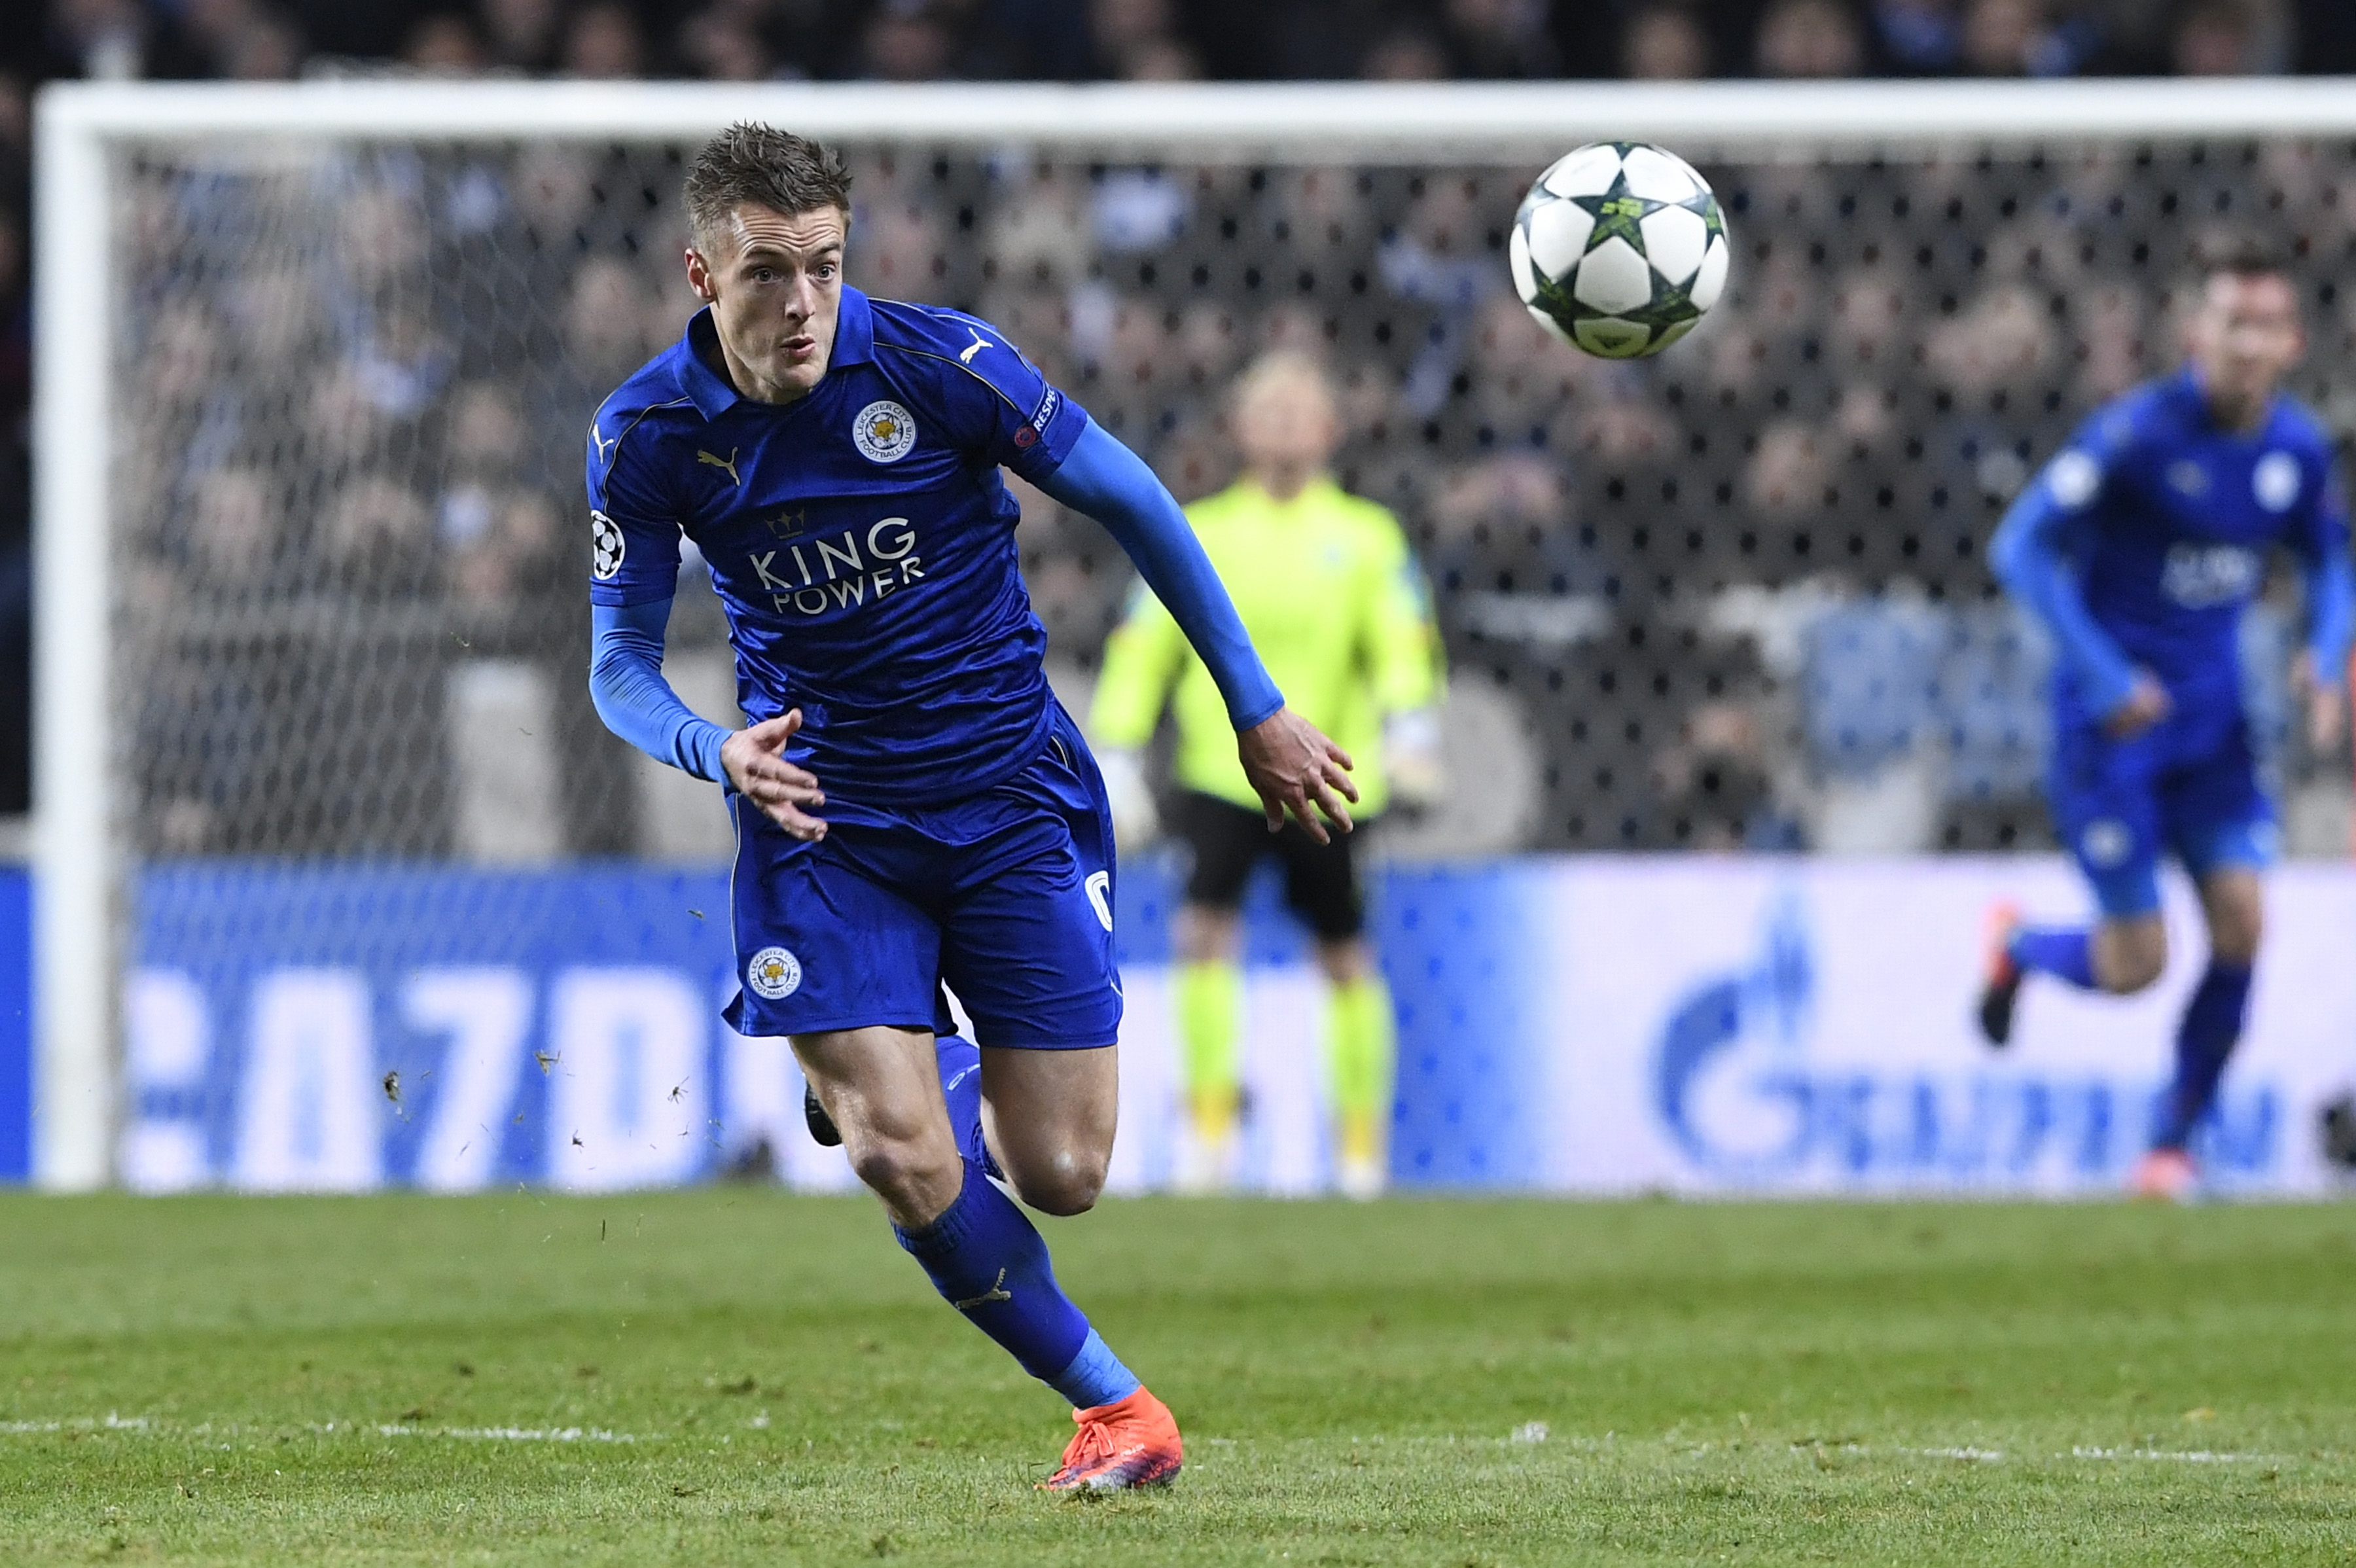 Porto v Leicester TV channel, date, kick-off time and odds